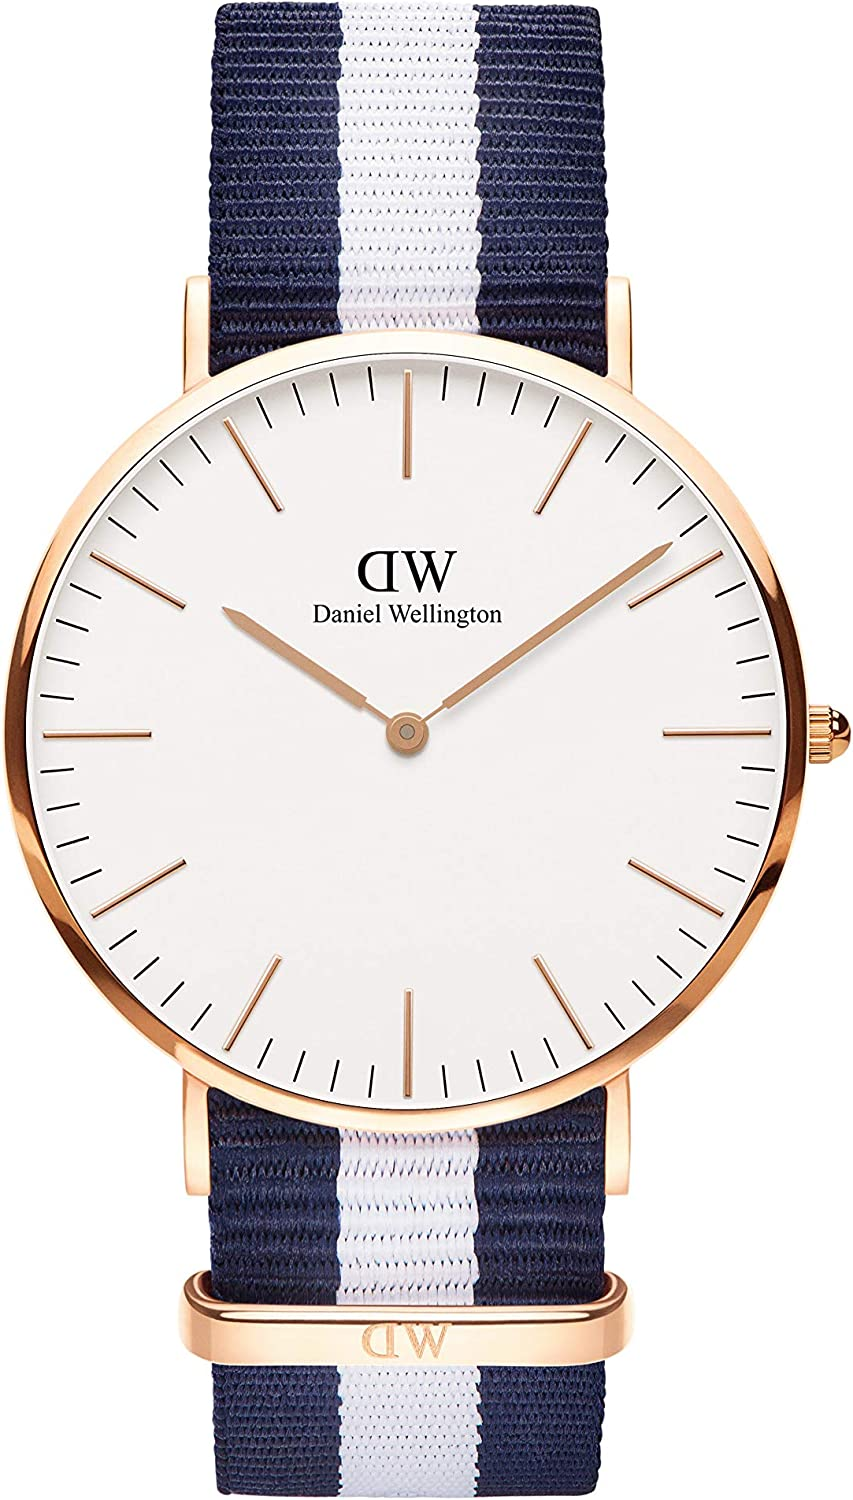 Daniel Wellington New Orleans Mall Classic Glasgow Multicolor Band NATO Watch Direct sale of manufacturer